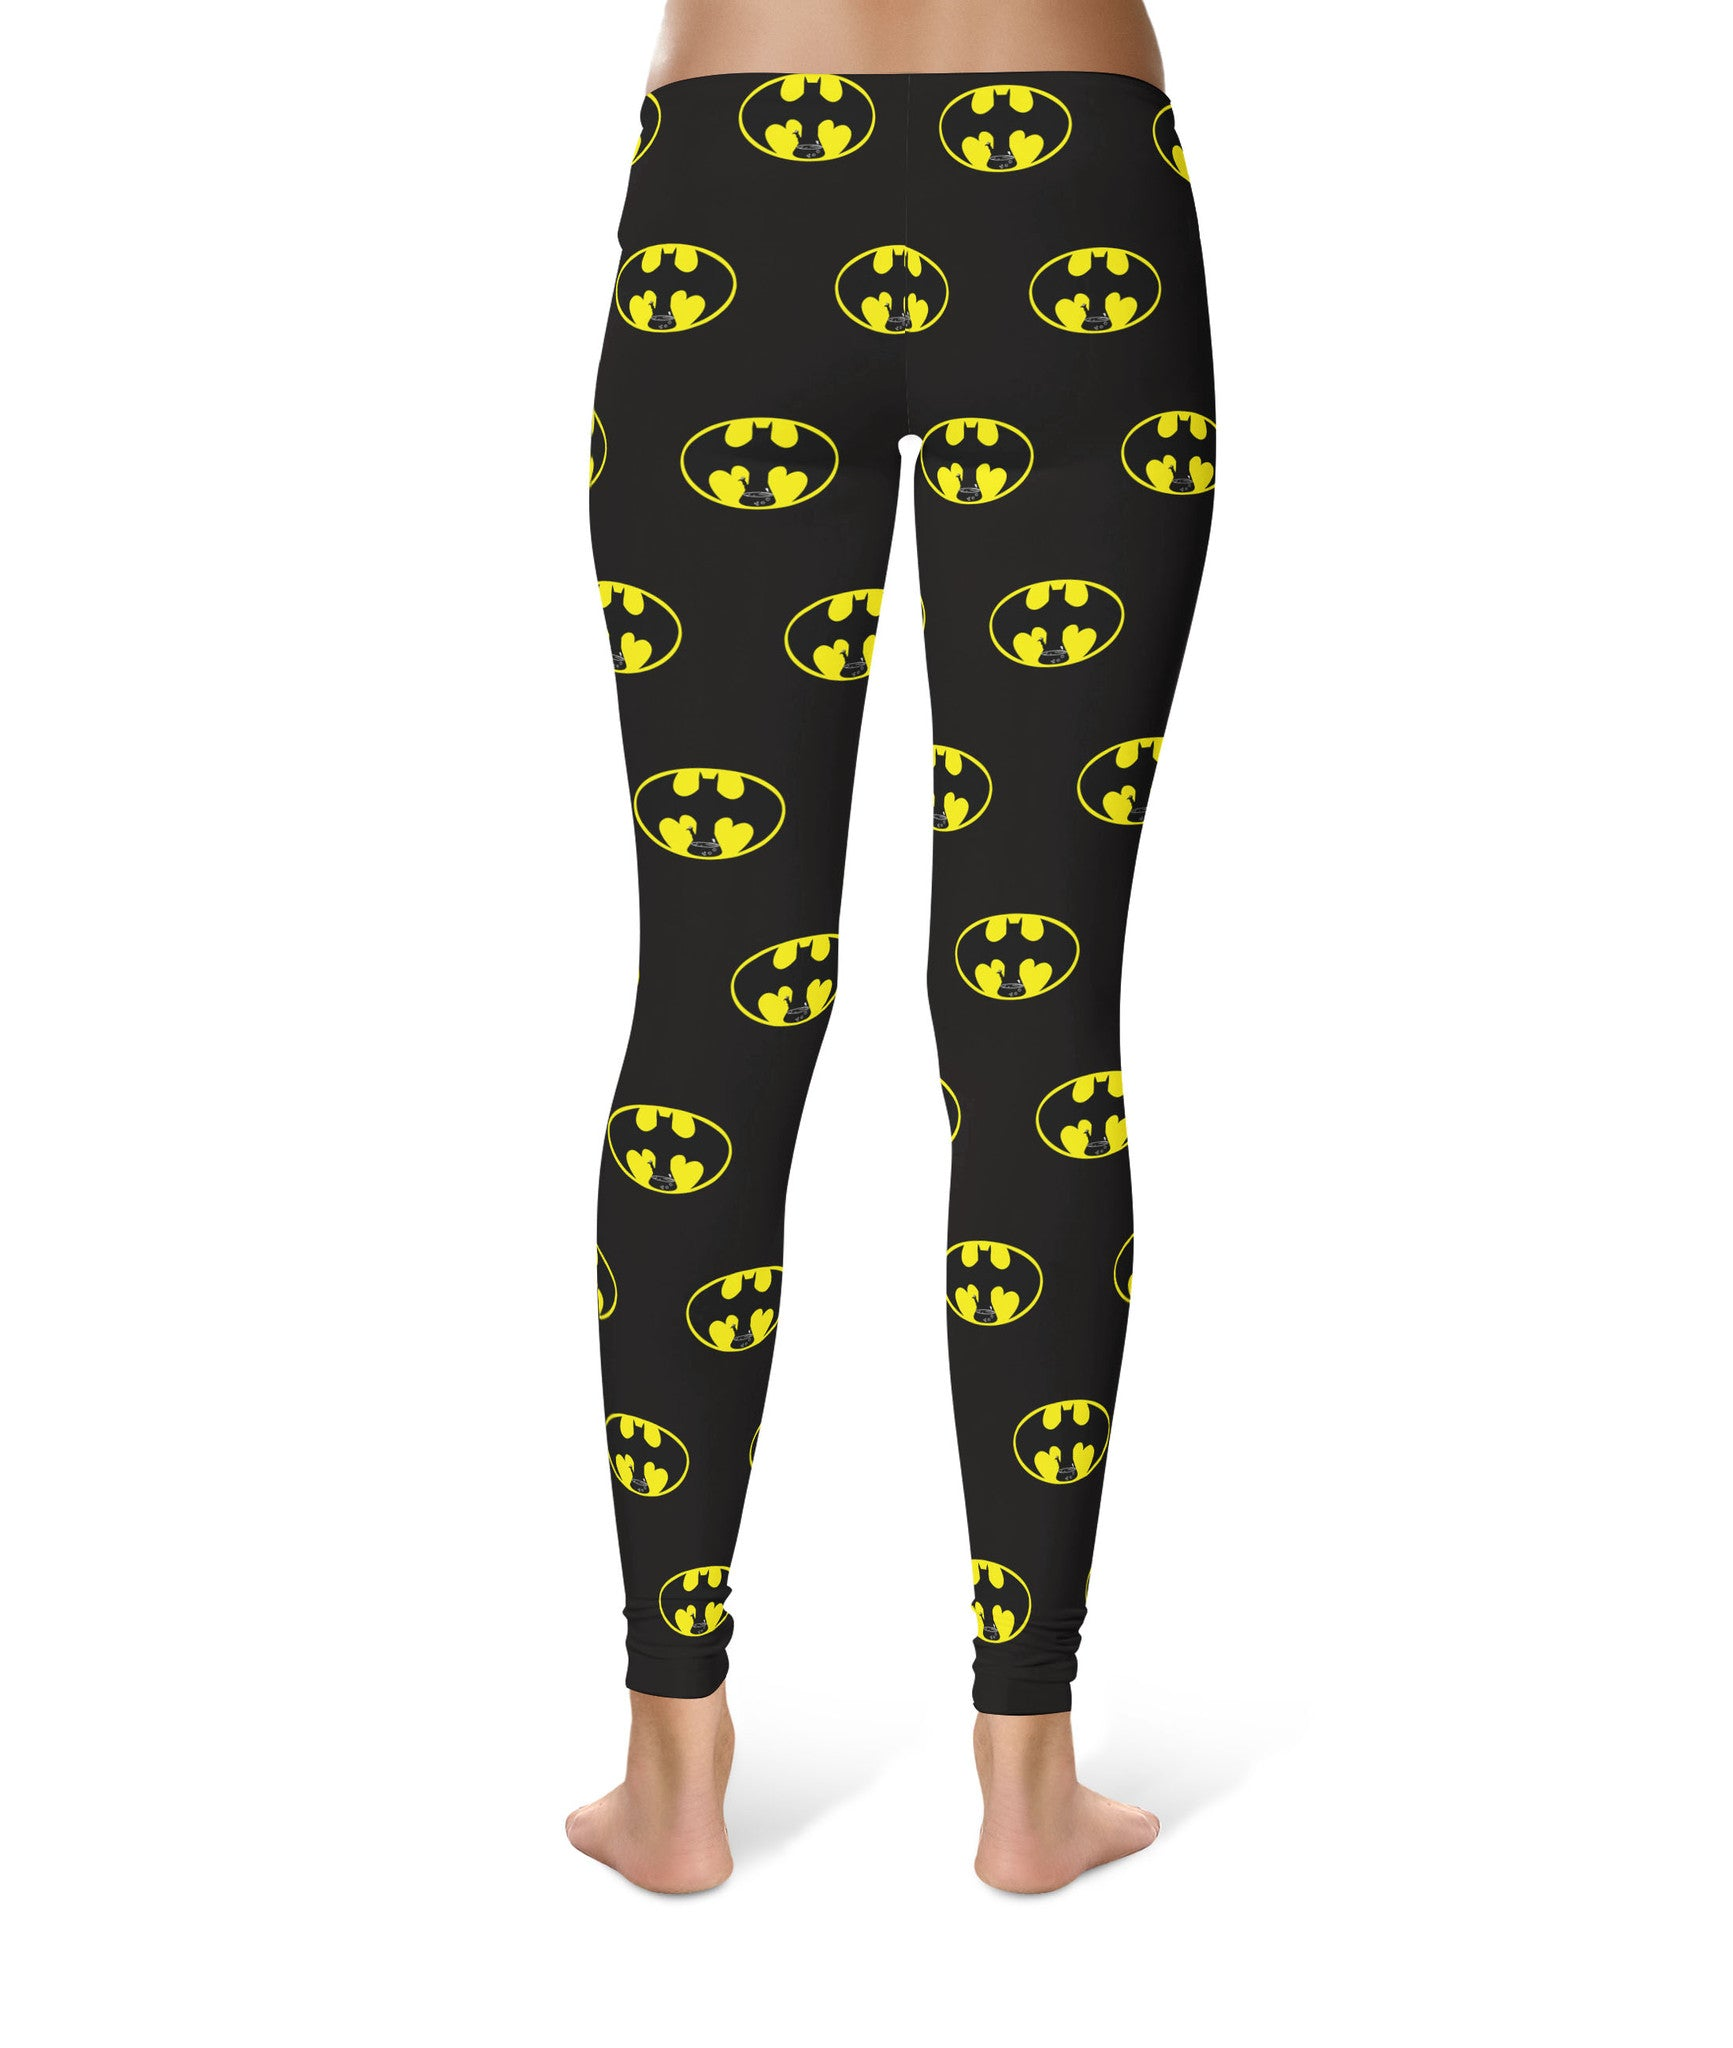 Bongman Leggings